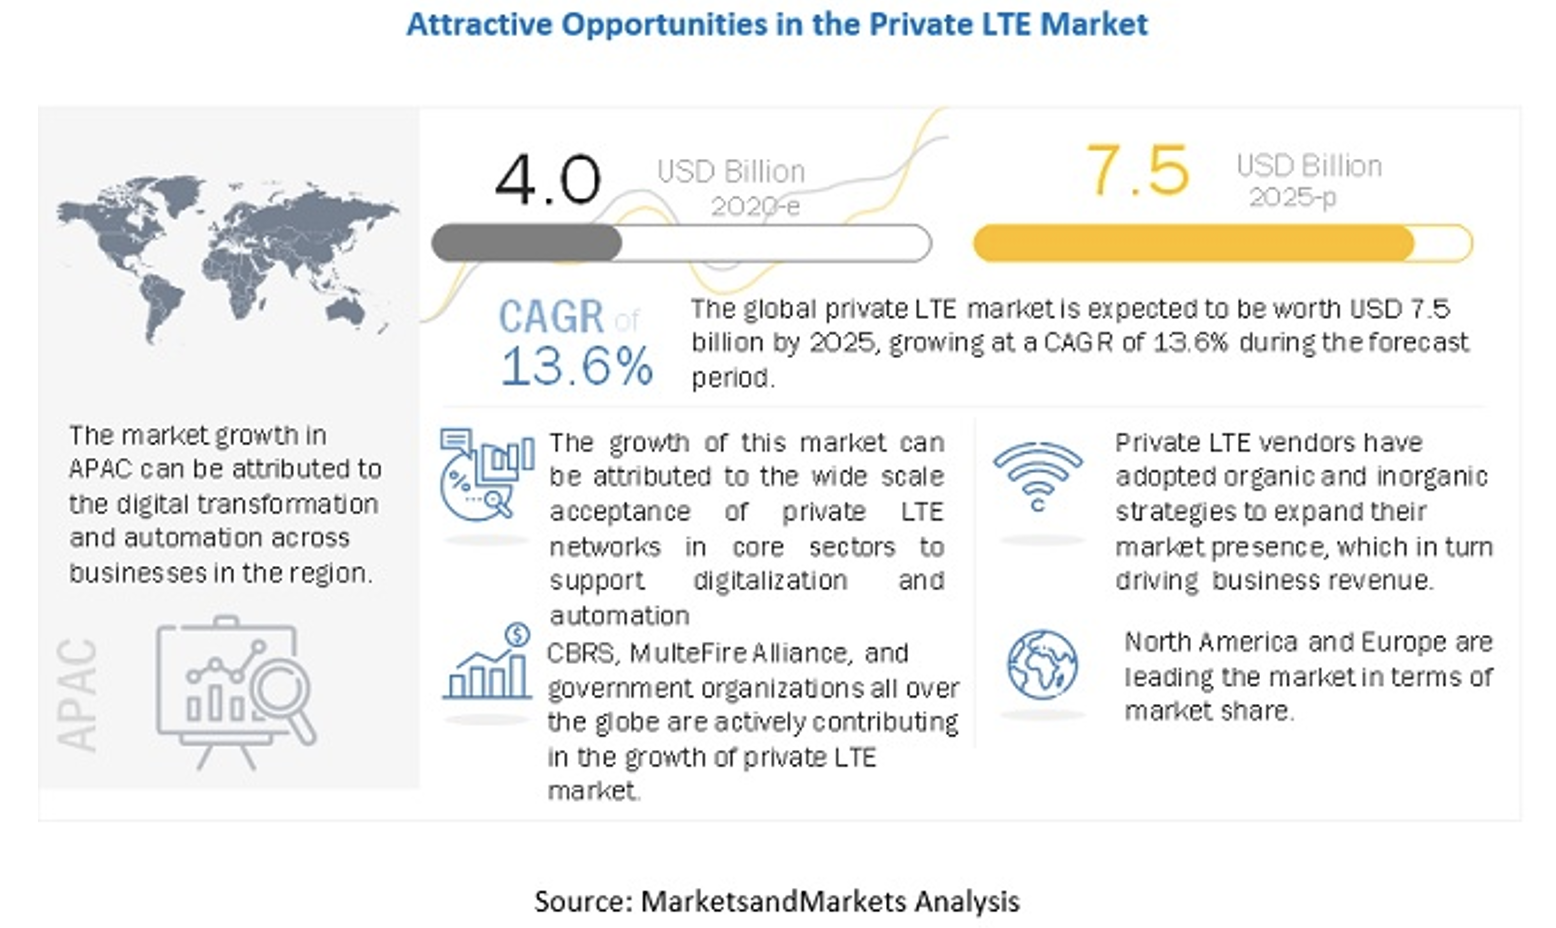 Attractive Opportunities in the Private LTE Market